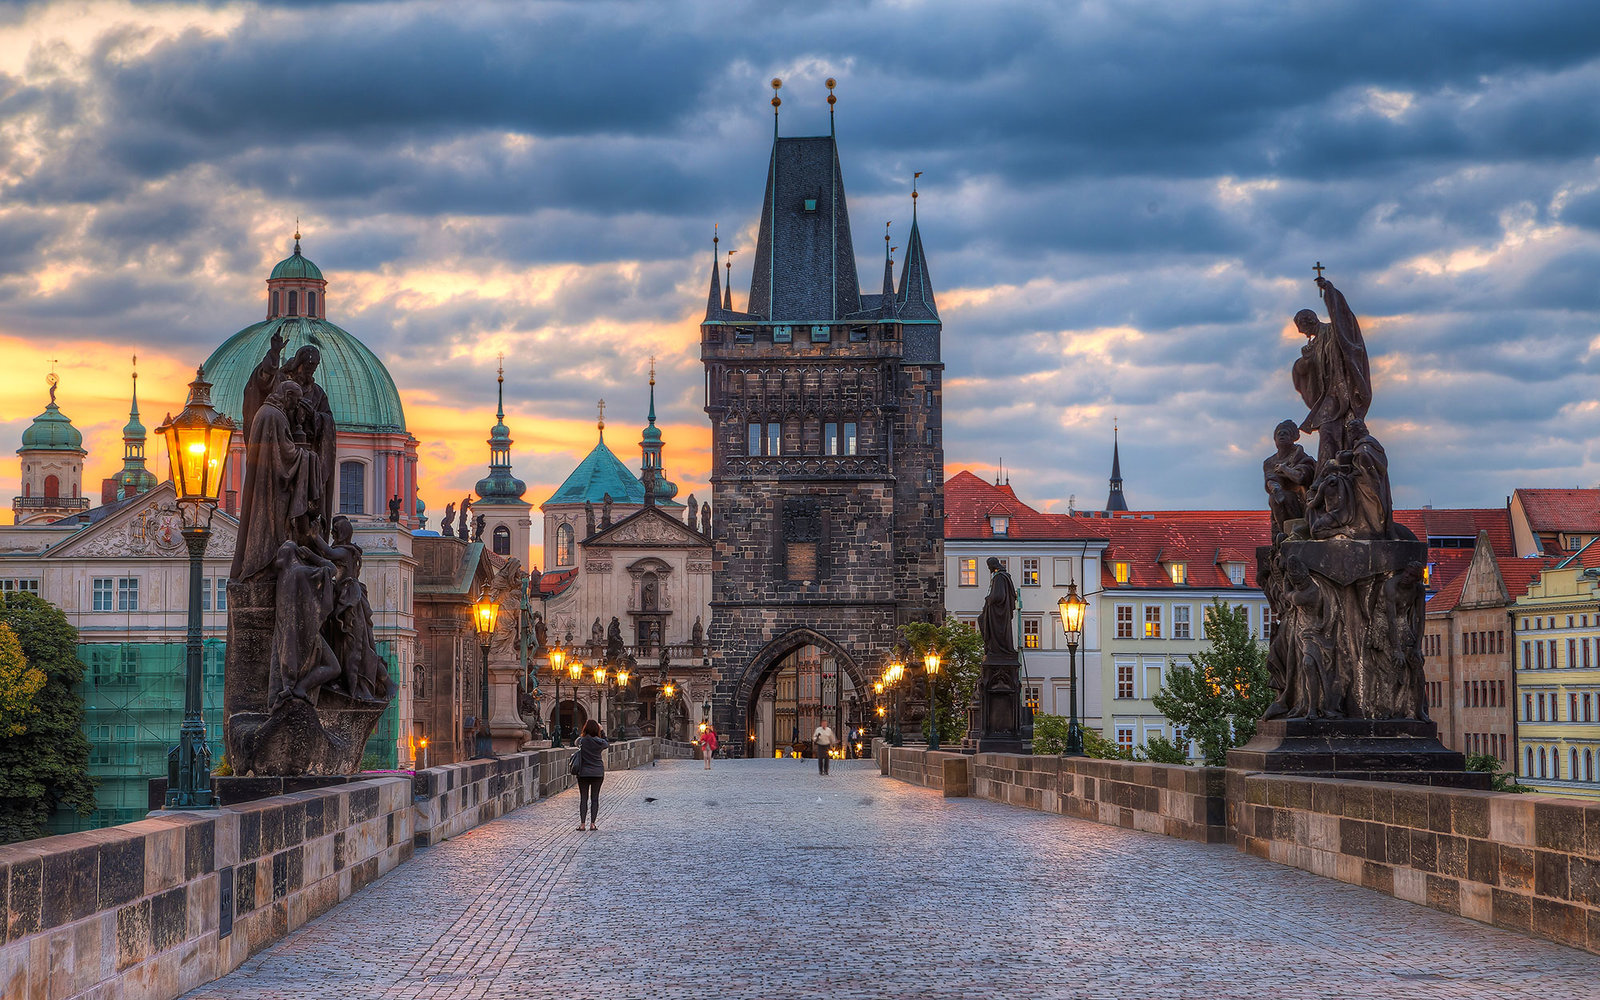 Charles bridge in Prague early in the morning.